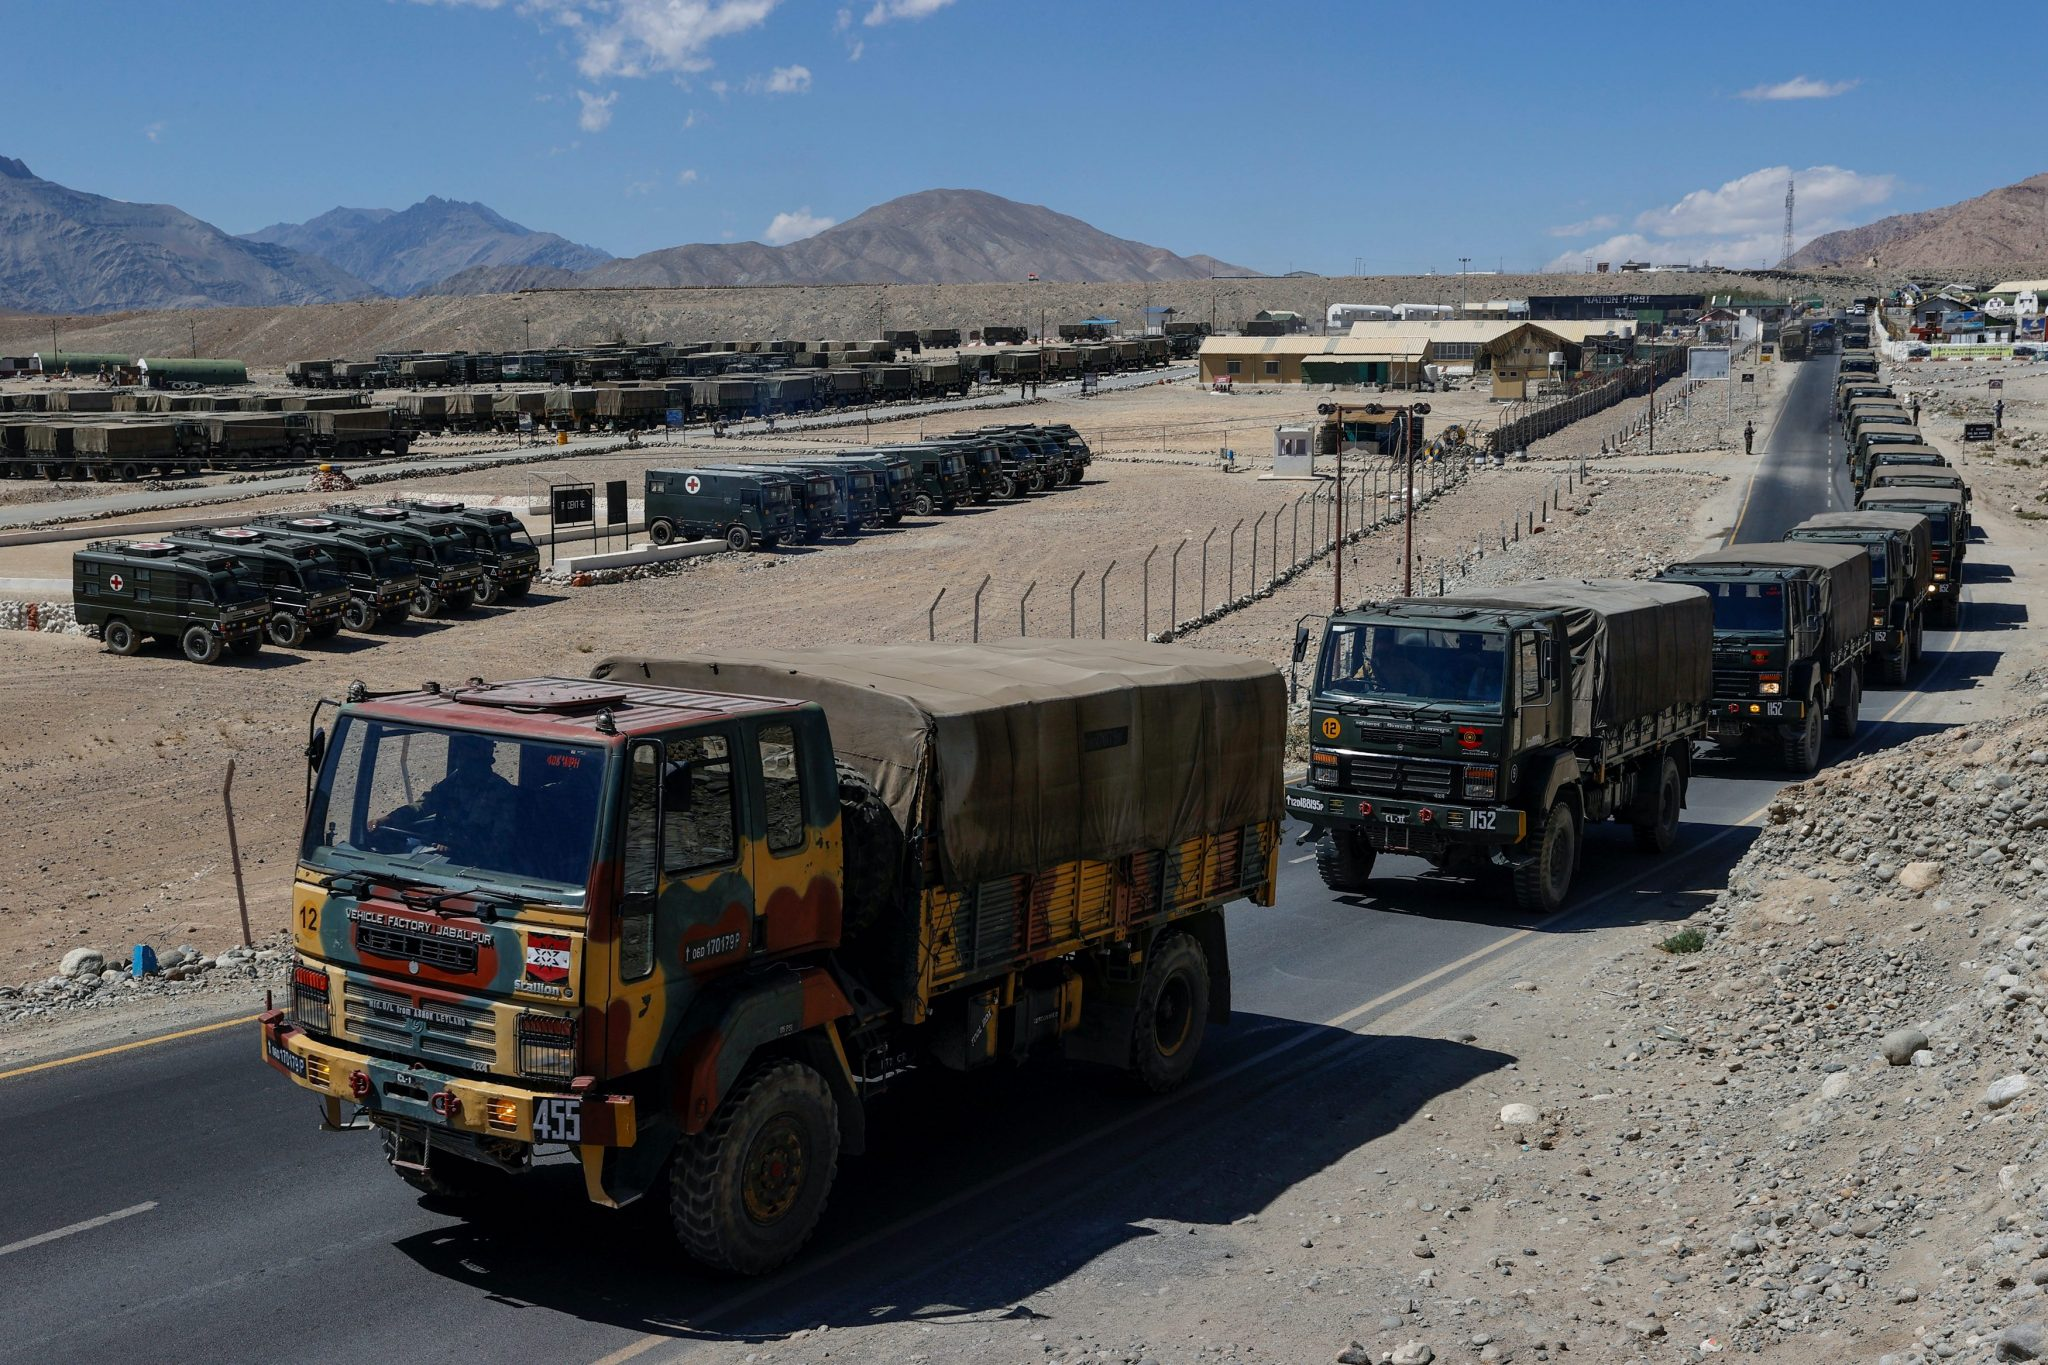 Military trucks carrying supplies move towards forward areas in the Ladakh region, 15 September, 2020 (Photo: Reuters/Danish Siddiqui).